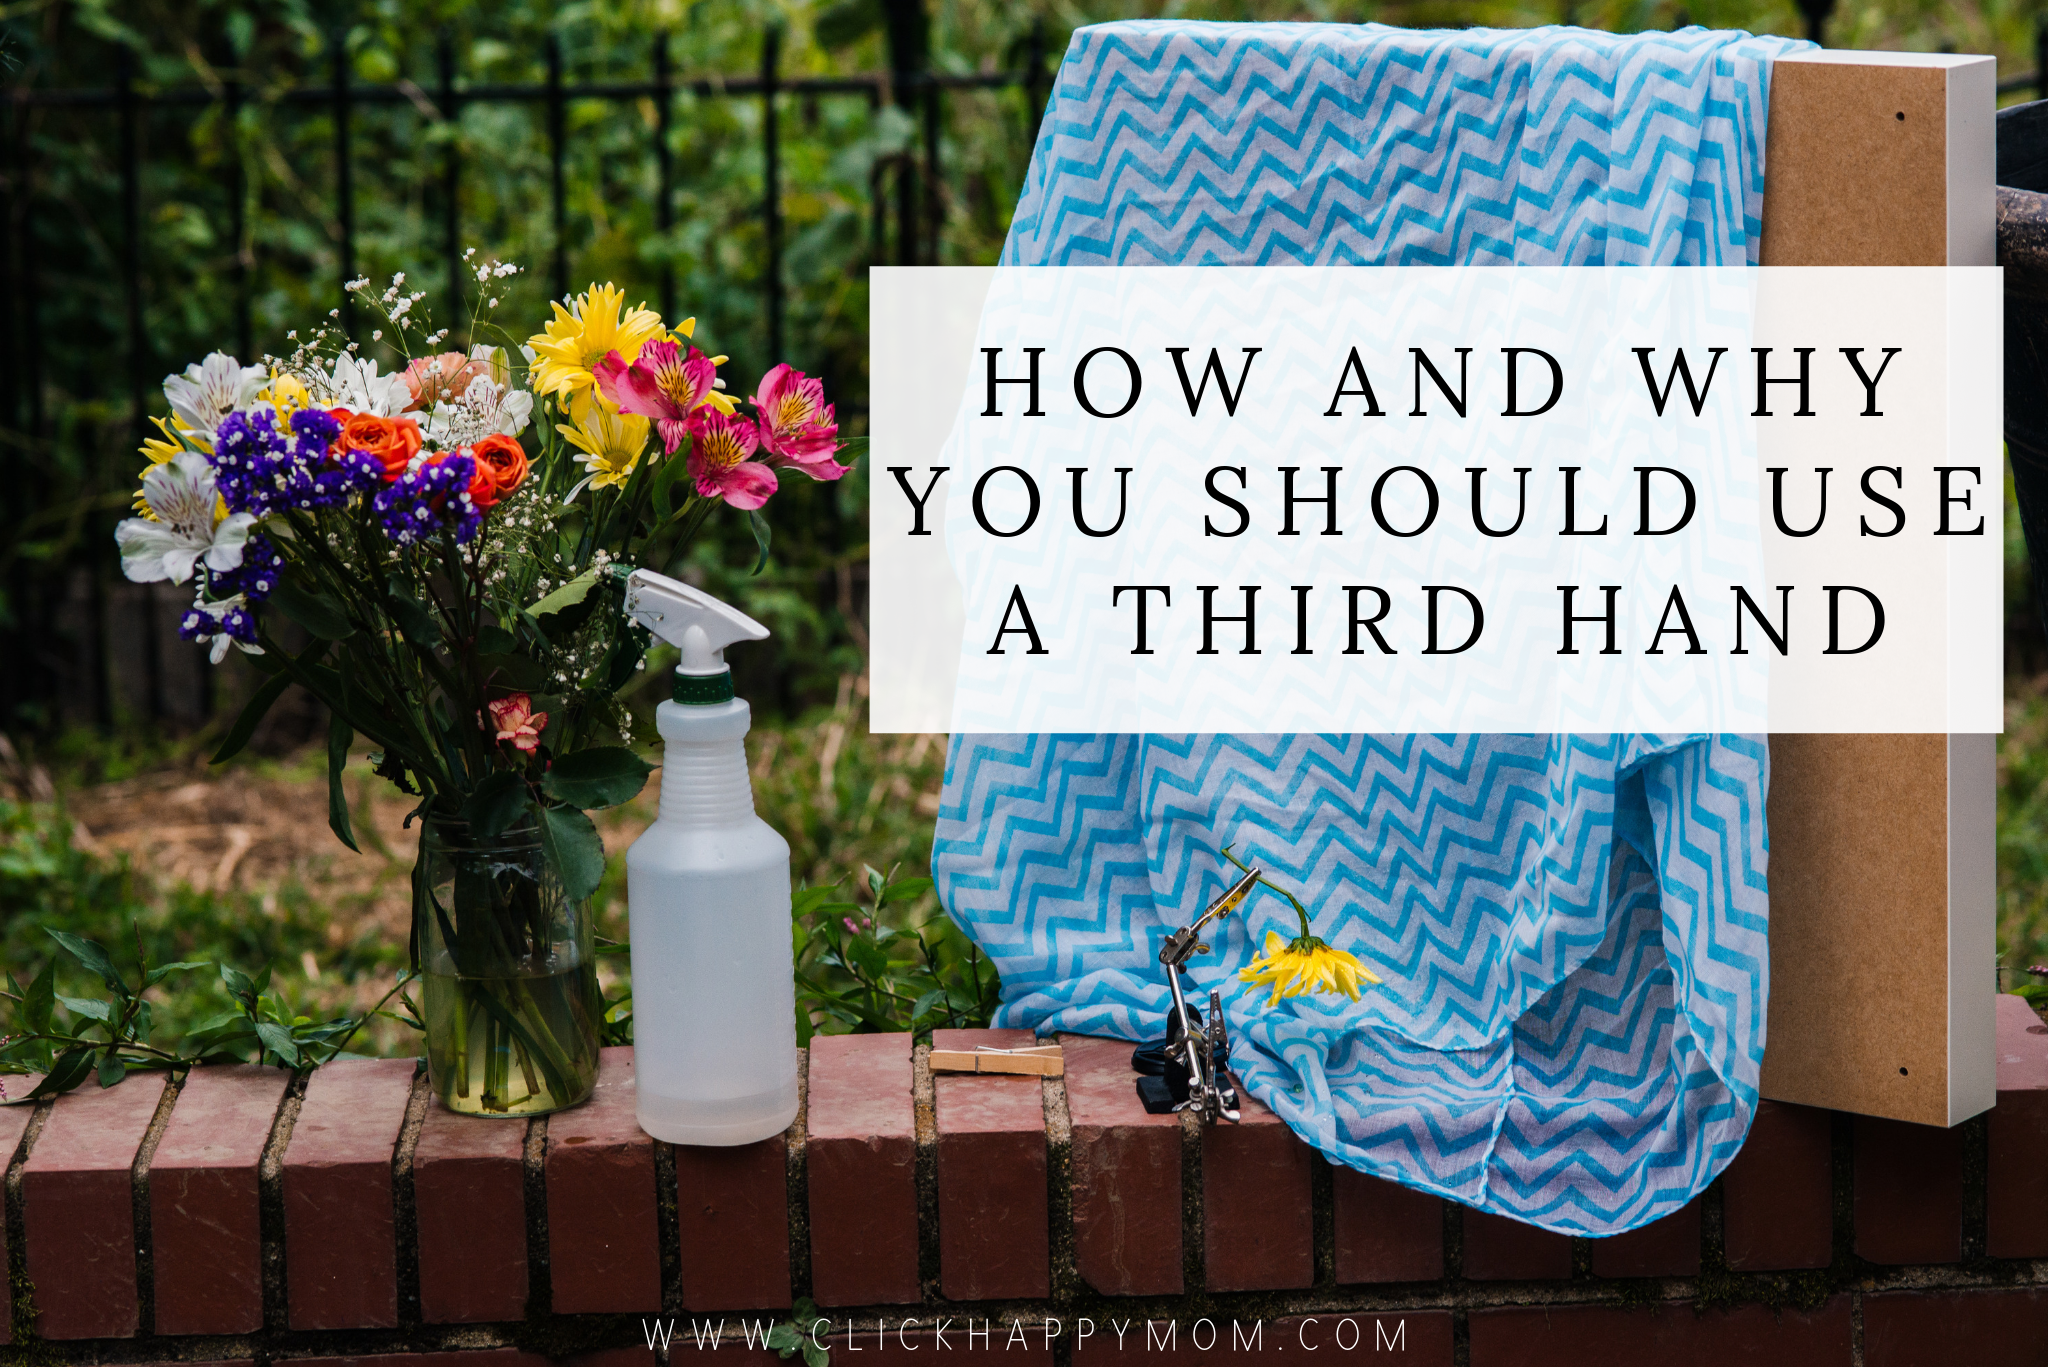 How and Why You Should Use a Third Hand